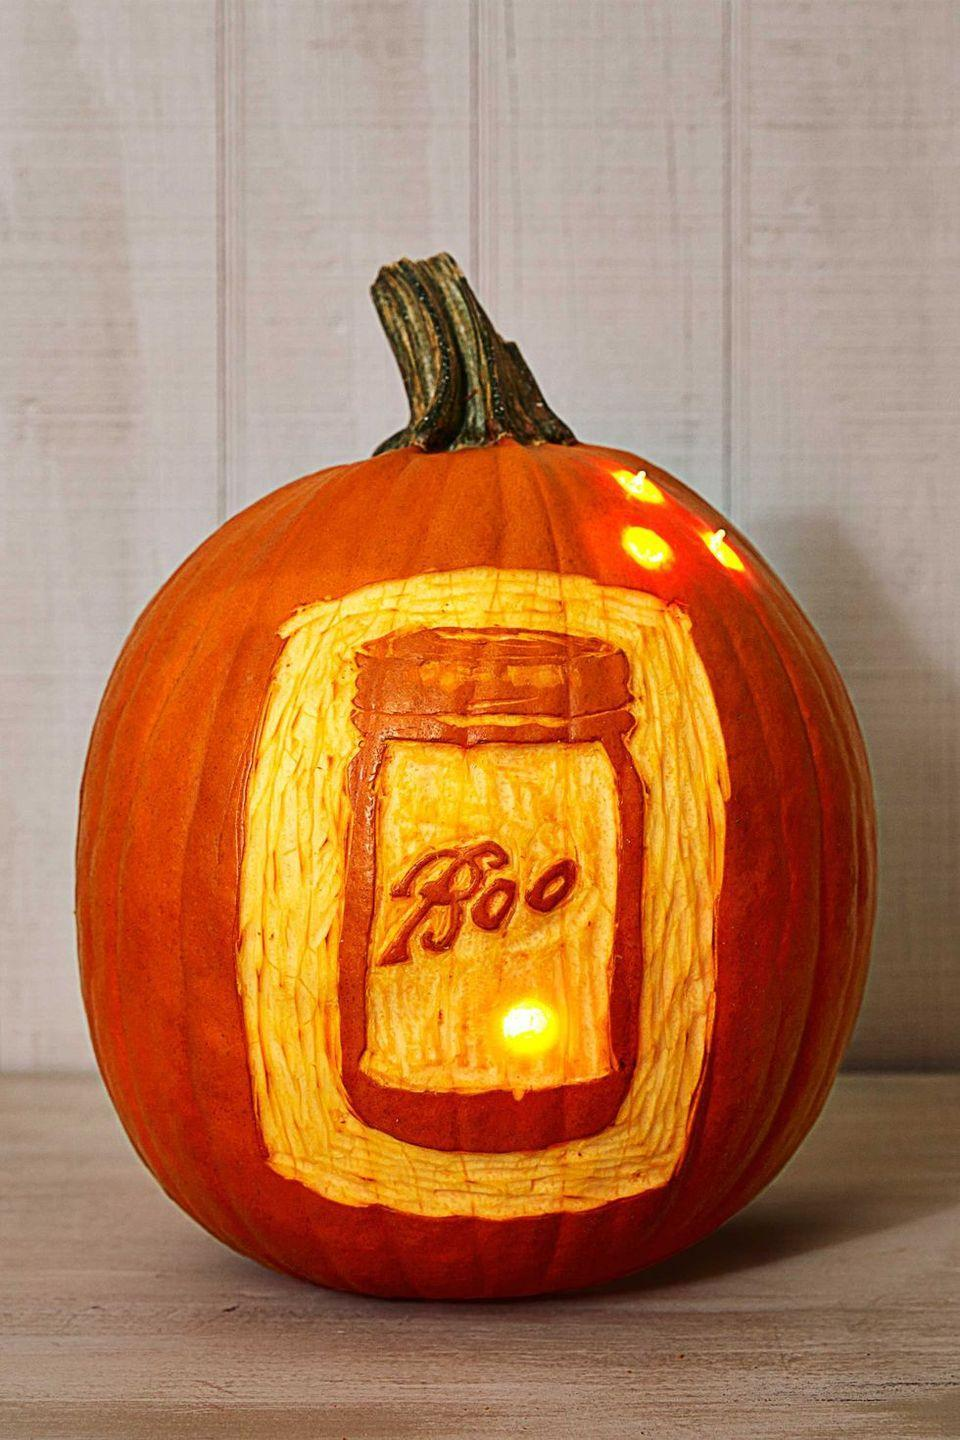 """<p>Pay homageto your favorite kitchen accessory with this dreamy design. Transfer paper and a downloadable template make it easy. </p><p><strong>Get the tutorial at <a href=""""https://www.countryliving.com/diy-crafts/g279/pumpkin-carving-ideas/?slide=28"""" rel=""""nofollow noopener"""" target=""""_blank"""" data-ylk=""""slk:Country Living"""" class=""""link rapid-noclick-resp"""">Country Living</a>.</strong></p><p><strong><a class=""""link rapid-noclick-resp"""" href=""""https://go.redirectingat.com?id=74968X1596630&url=https%3A%2F%2Fwww.walmart.com%2Fsearch%2F%3Fquery%3Dtransfer%2Bpaper&sref=https%3A%2F%2Fwww.thepioneerwoman.com%2Fhome-lifestyle%2Fcrafts-diy%2Fg36982763%2Fpumpkin-carving-ideas%2F"""" rel=""""nofollow noopener"""" target=""""_blank"""" data-ylk=""""slk:SHOP TRANSFER PAPER"""">SHOP TRANSFER PAPER</a><br></strong></p>"""